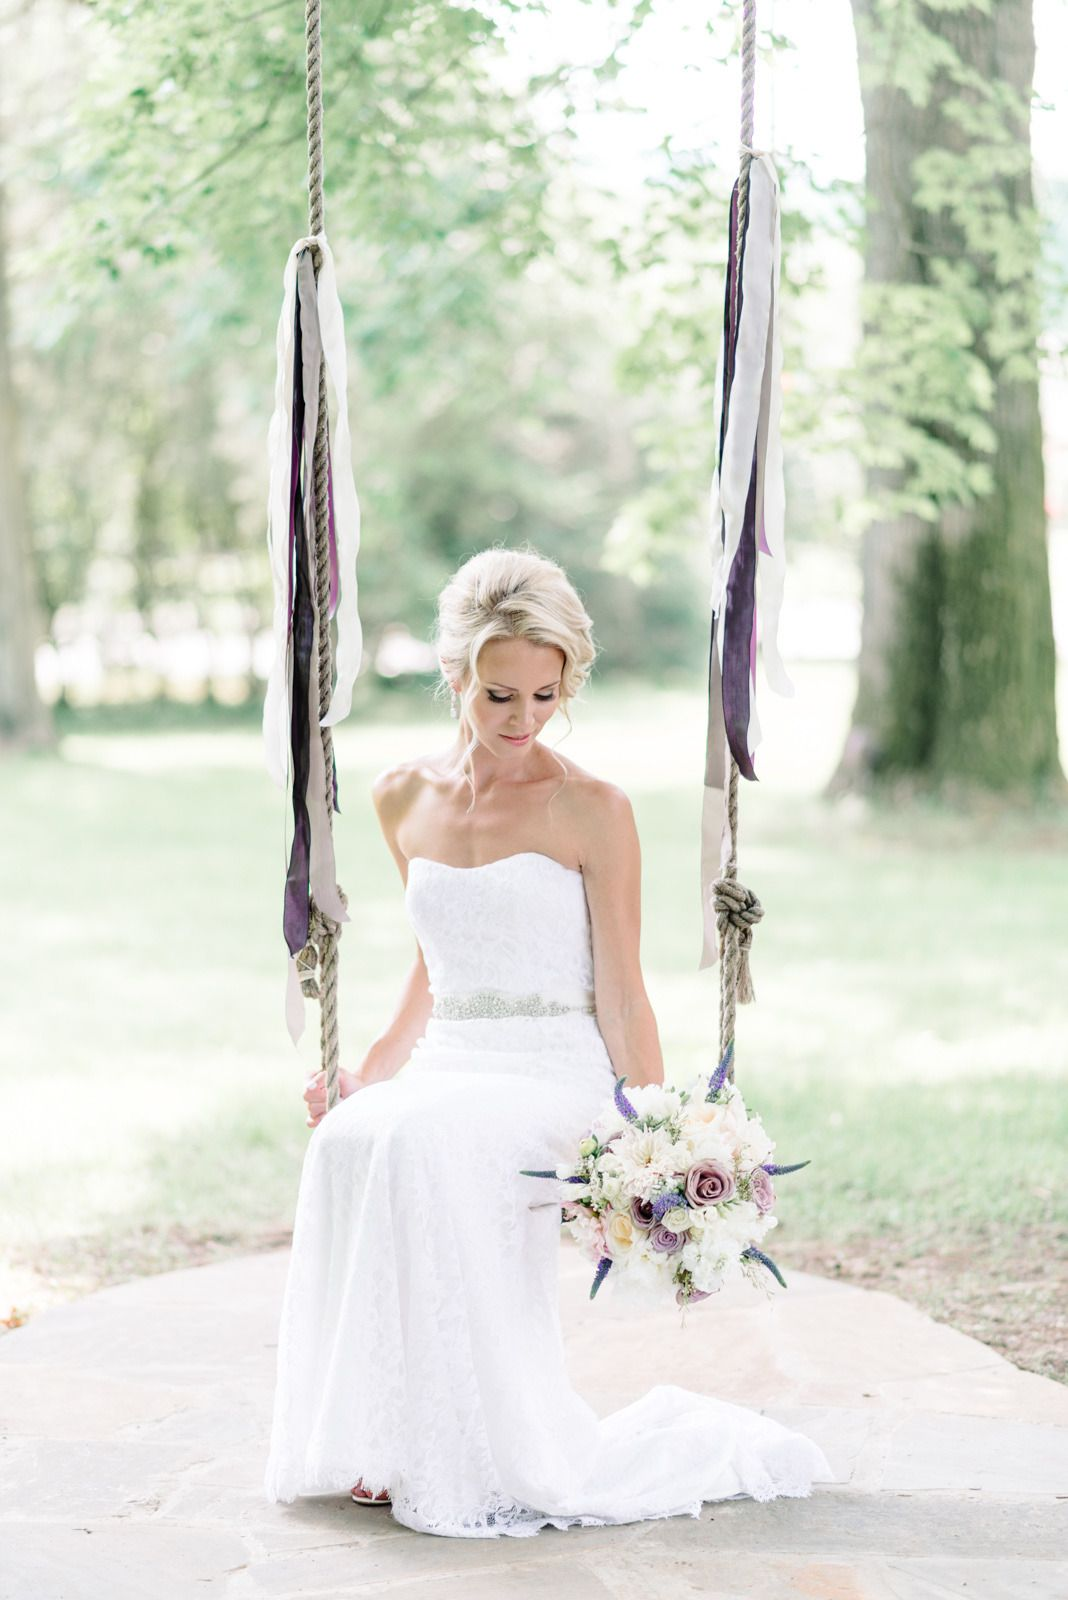 Nashville Wedding from Michelle Lange Photography | Bridal gowns ...